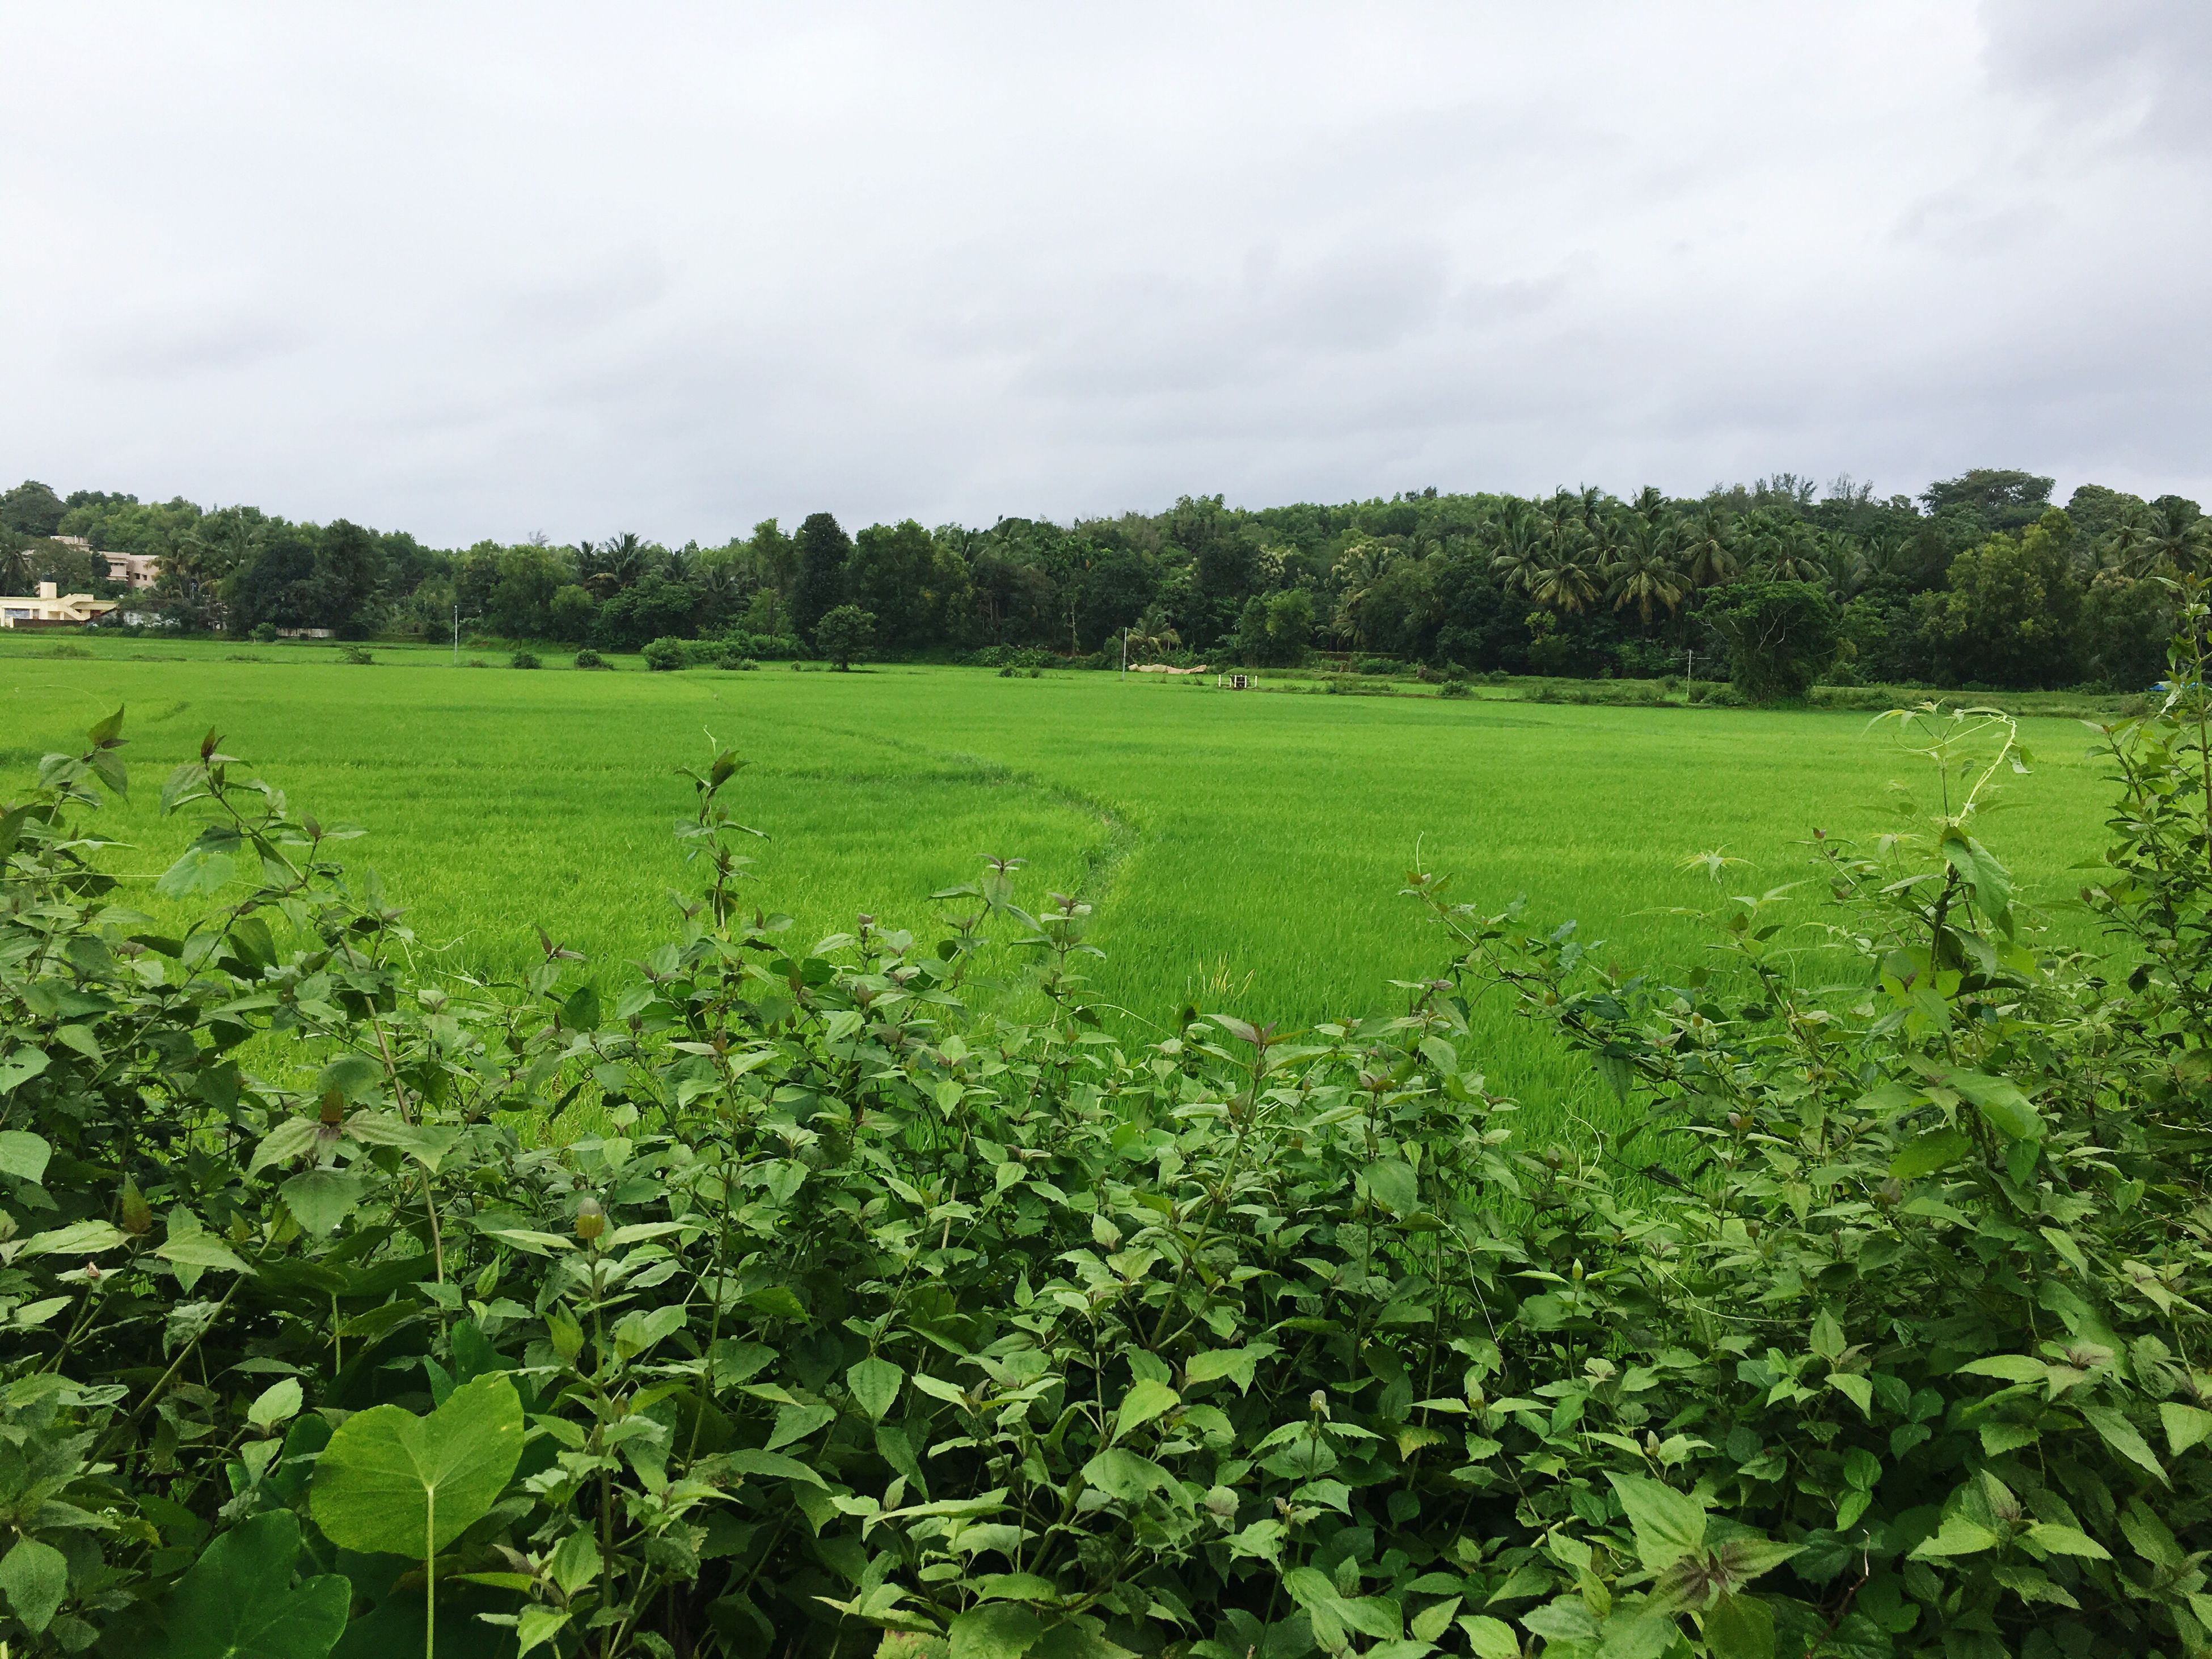 field, green color, tranquil scene, plant, scenics, growth, sky, tranquility, rural scene, beauty in nature, landscape, nature, agriculture, flower, crop, freshness, farm, cultivated land, cloud - sky, day, non-urban scene, outdoors, no people, cultivated, lush foliage, green, vibrant color, cloudy, fragility, majestic, springtime